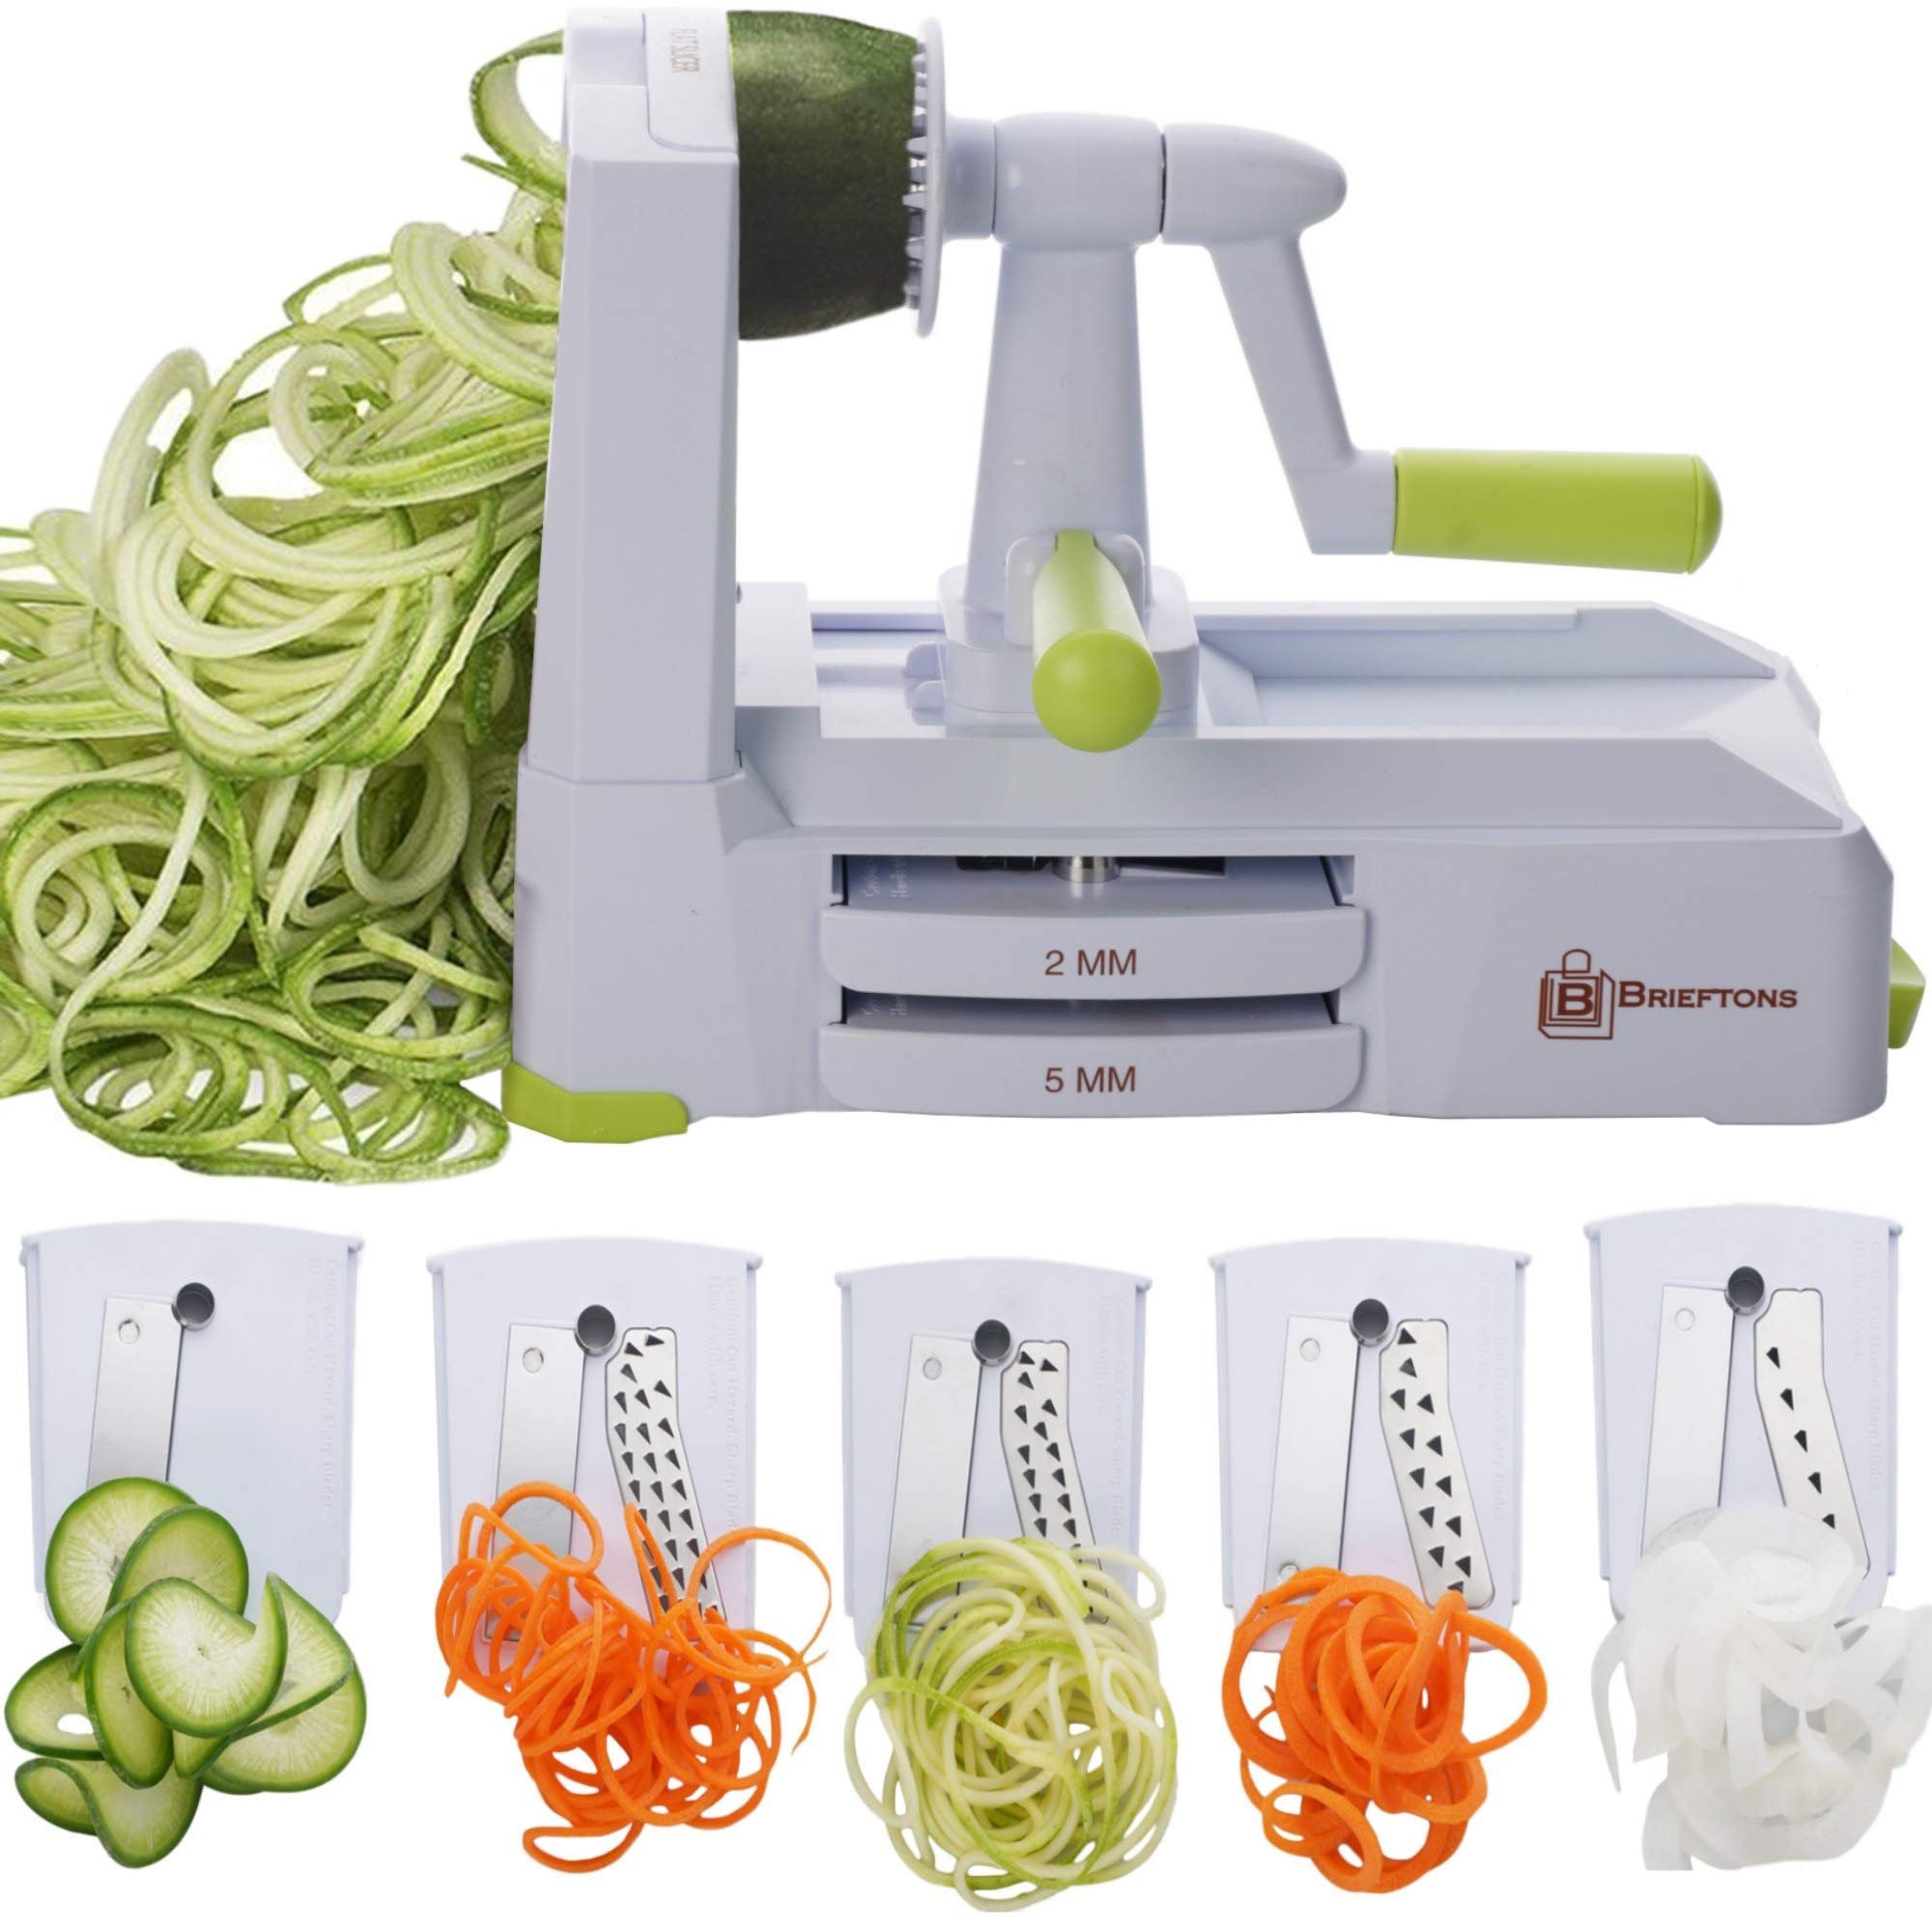 Brieftons 5-Blade Spiralizer (BR-5B-02): Strongest-and-Heaviest Duty Vegetable Spiral Slicer, Best Veggie Pasta Spaghetti Maker for Low Carb/Paleo/Gluten-Free, With Extra Blade Caddy & 4 Recipe Ebooks by Brieftons